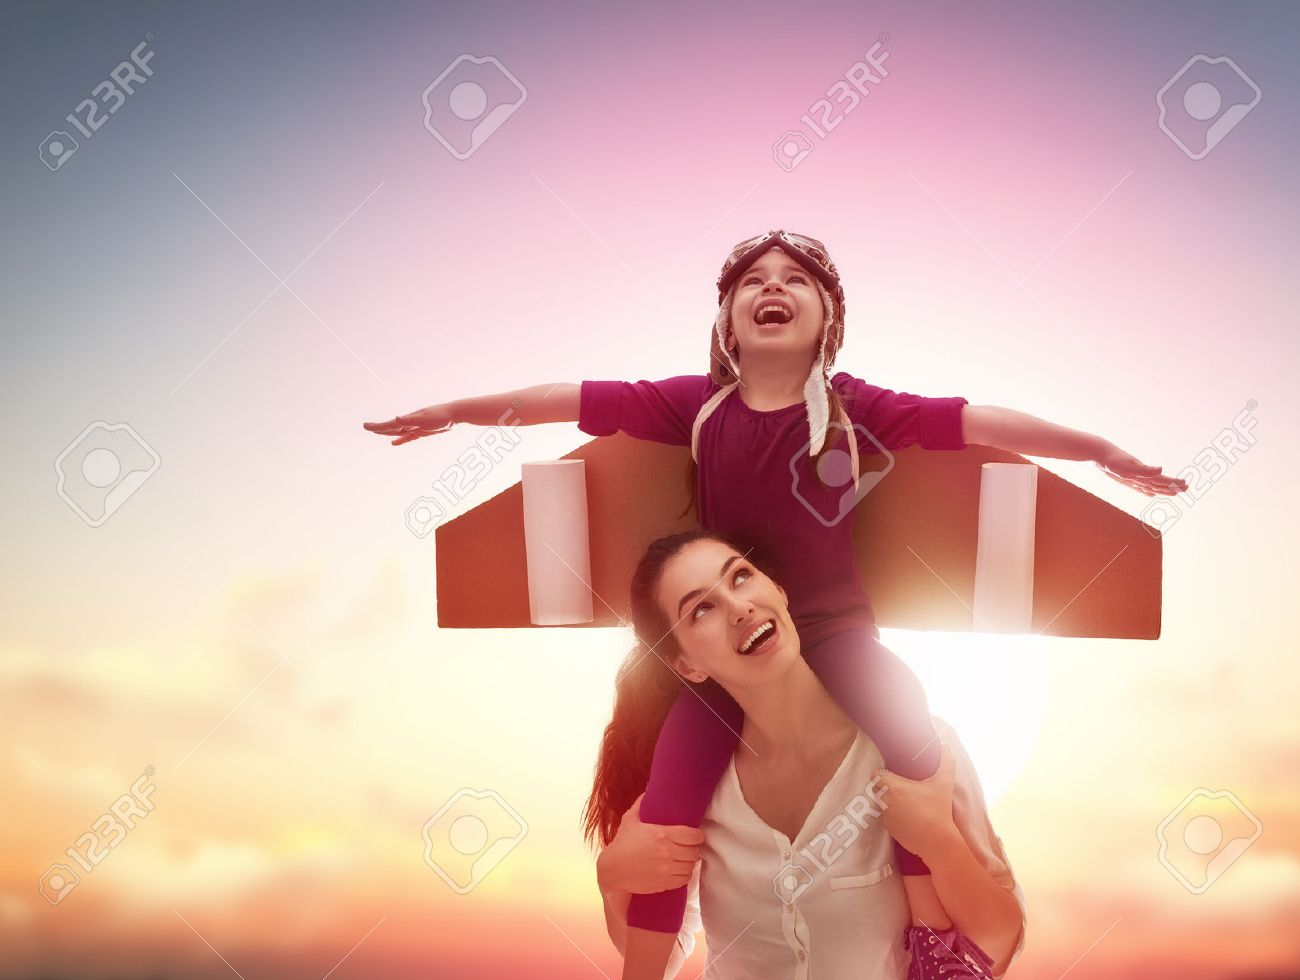 Mother and her child playing together. Little child girl plays astronaut. Child in an astronaut costume plays and dreams of becoming a spaceman. Happy loving family having fun. - 54018619